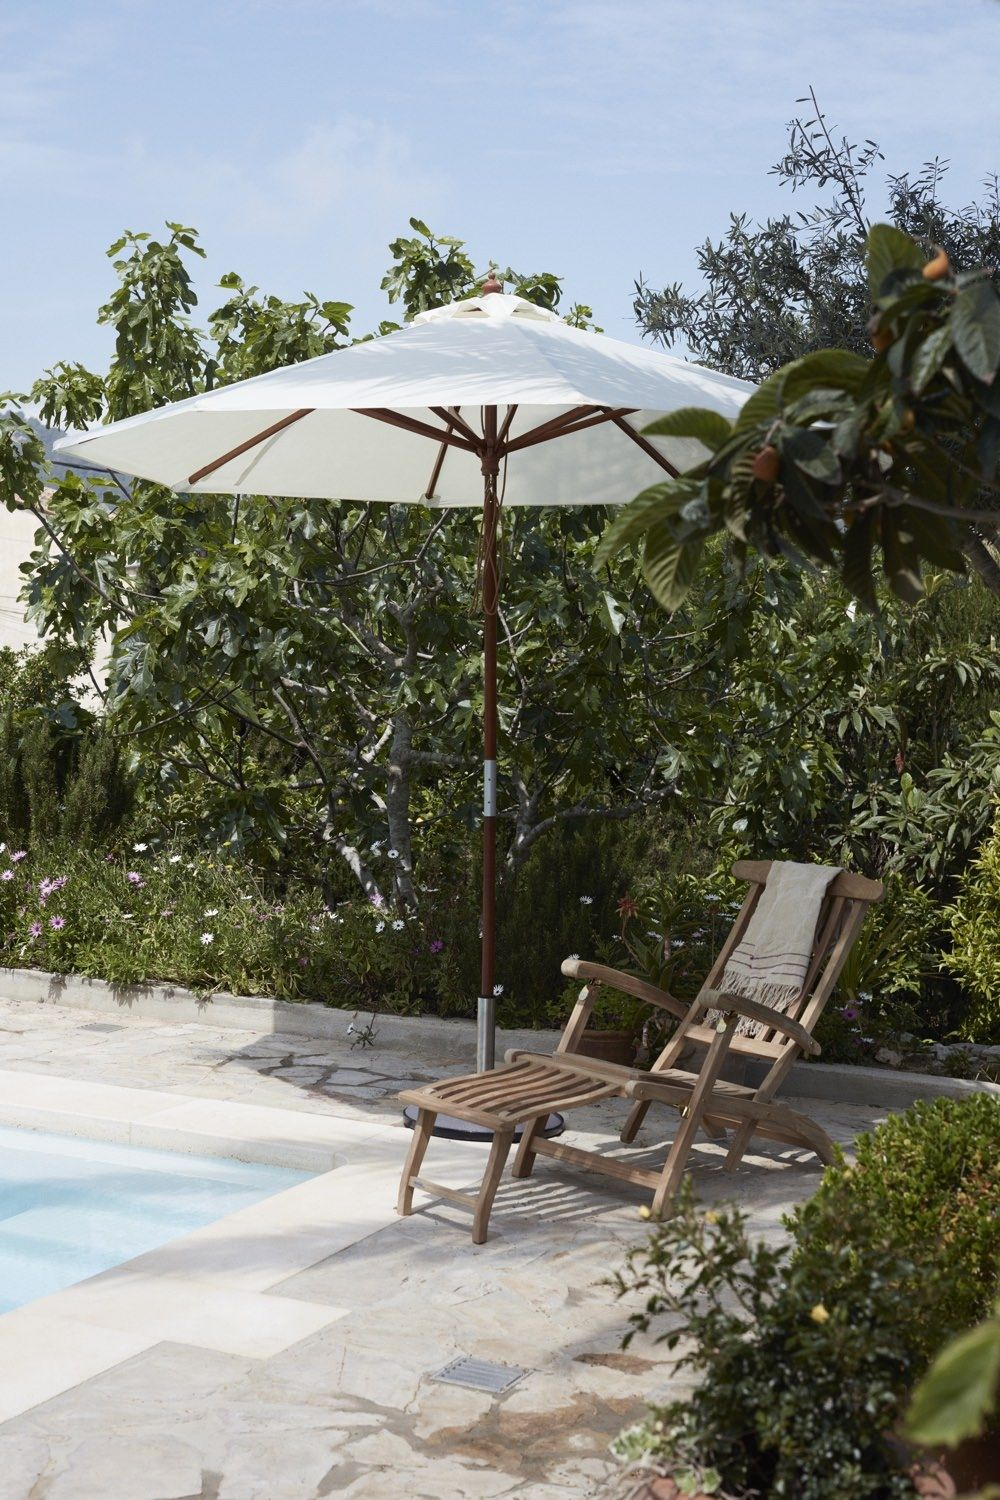 Skagerak Steamer Deck Chair by the pool under a parasol